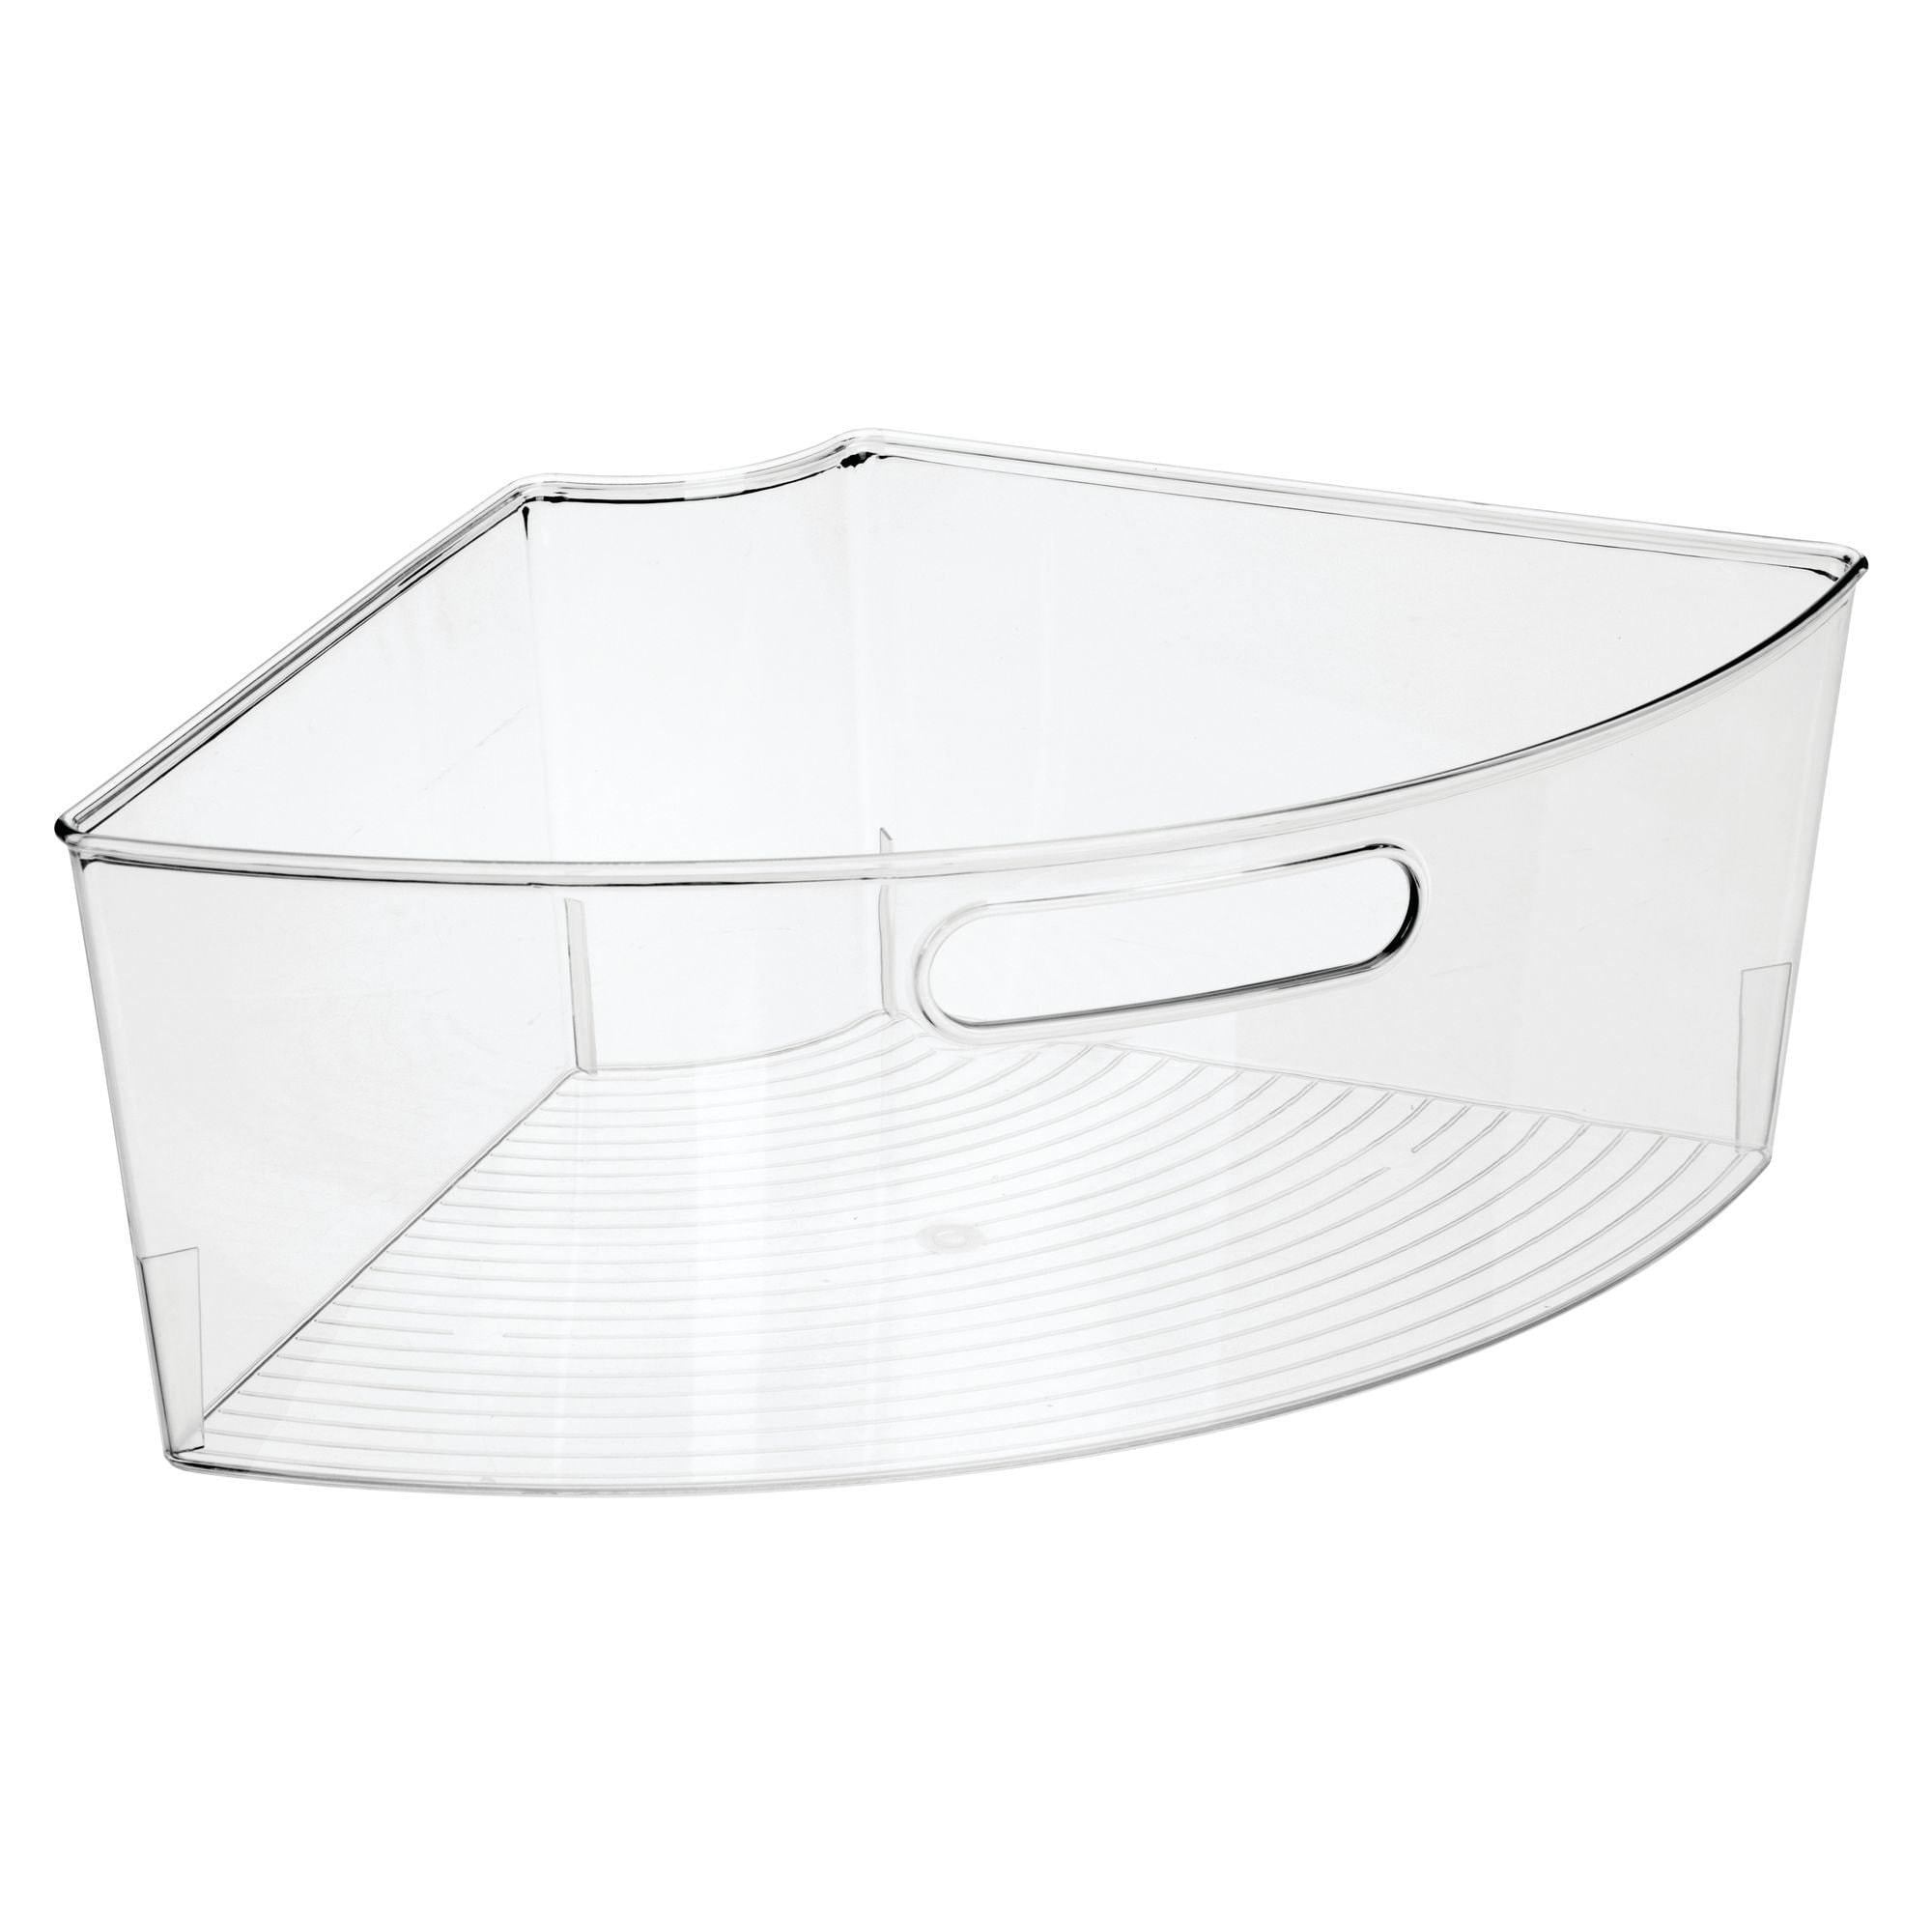 Try mdesign kitchen cabinet plastic lazy susan storage organizer bins with front handle large pie shaped 1 4 wedge 6 deep container food safe bpa free 4 pack clear